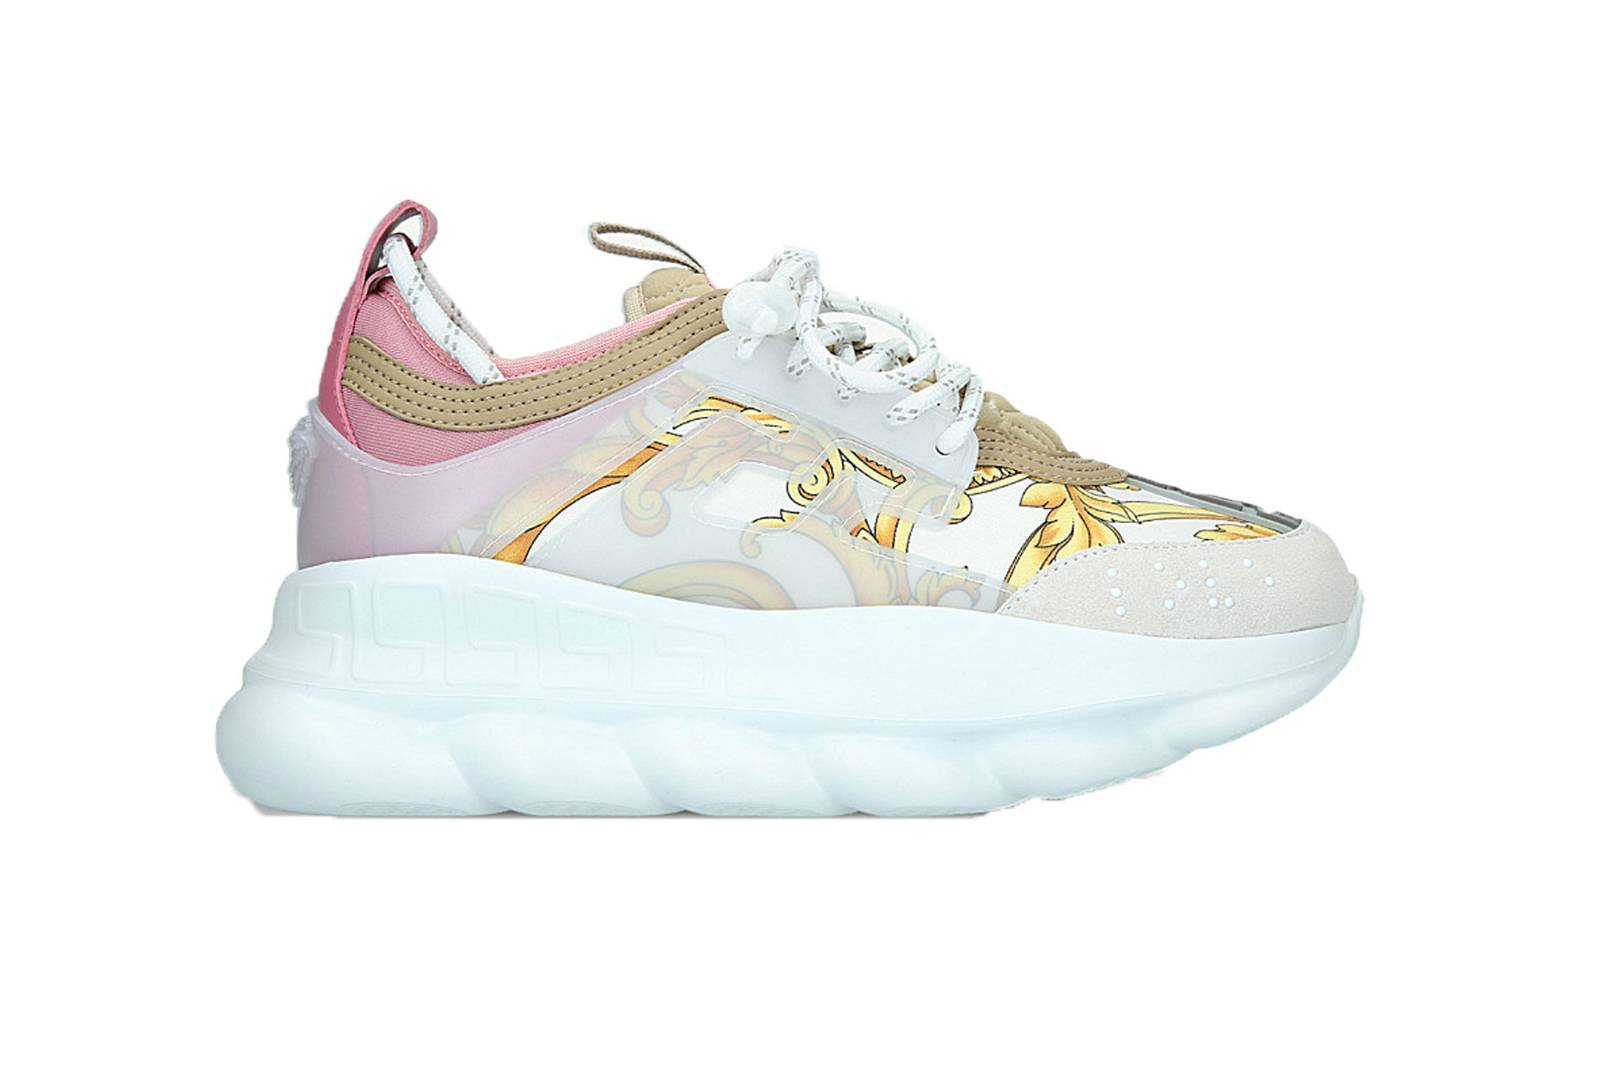 f05771d0aec7 New Release Trainers 2019